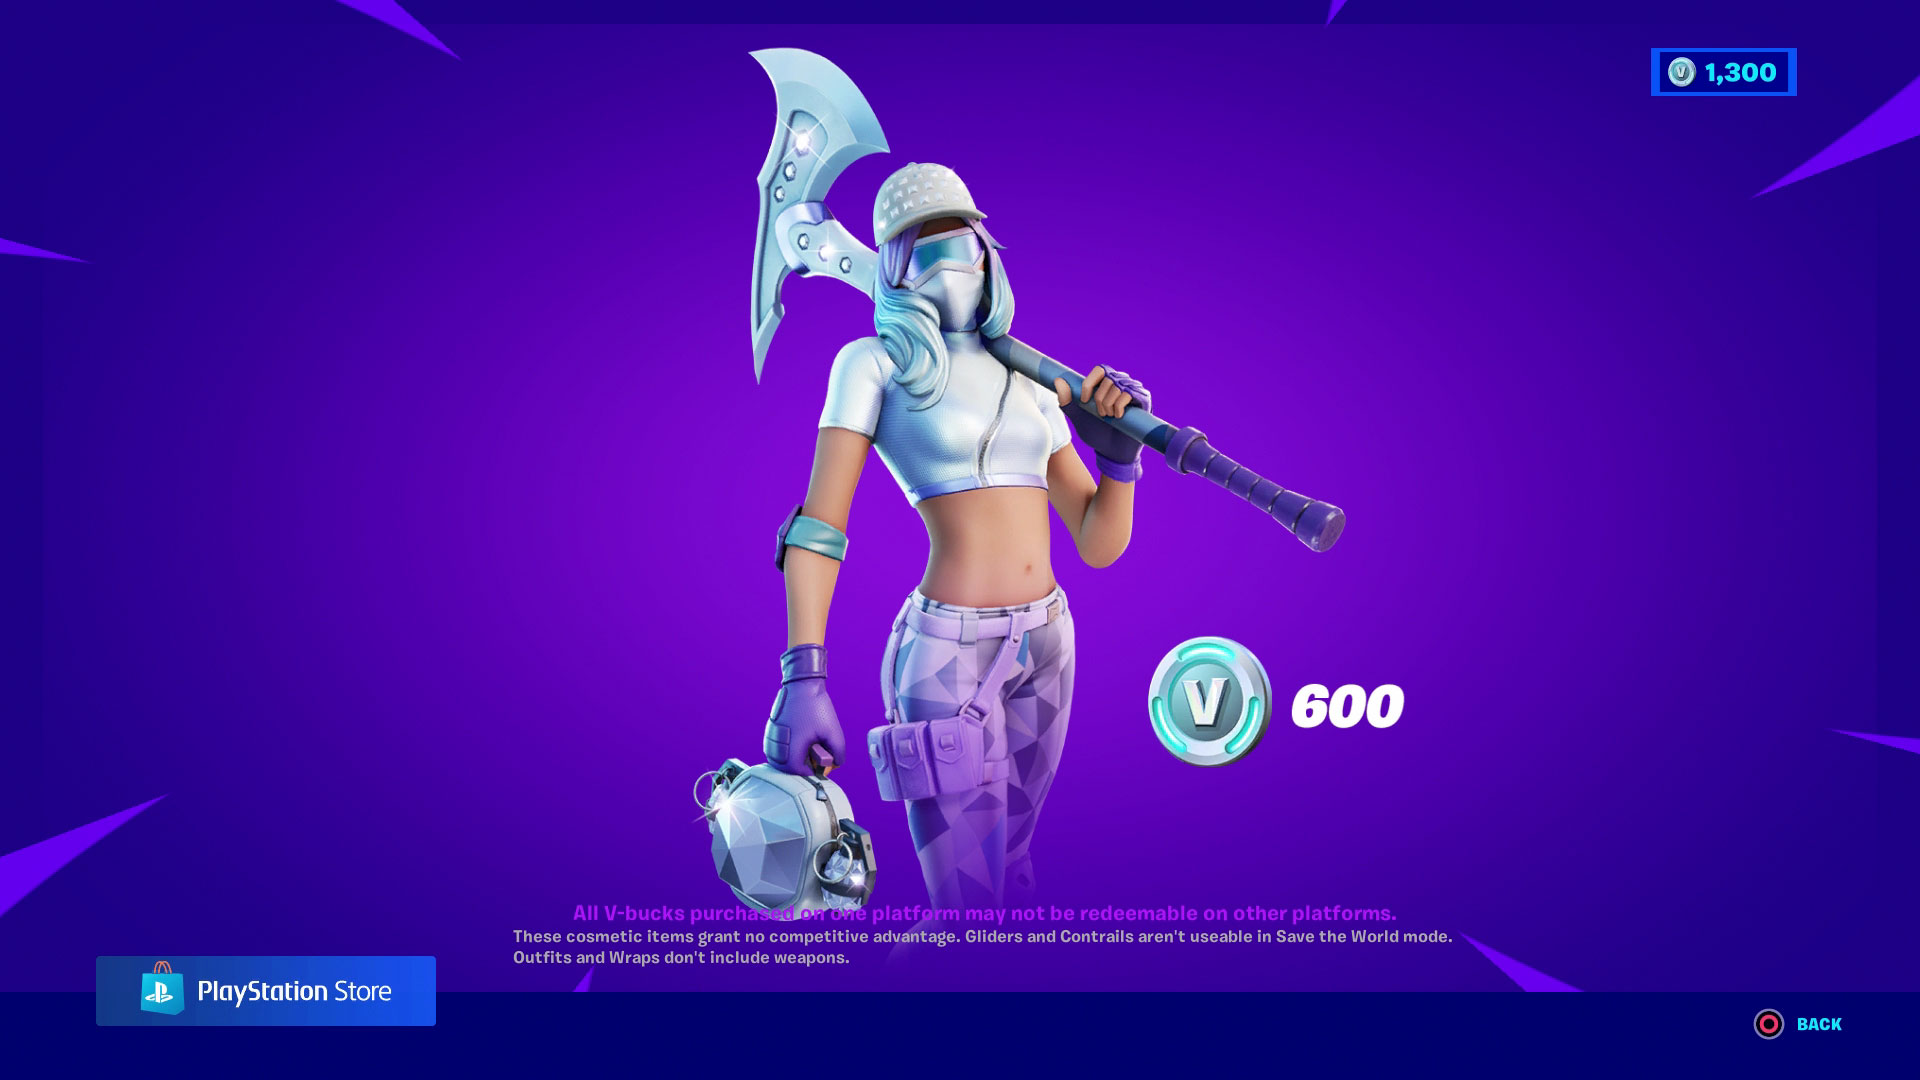 Fortnite Starter Pack The Fortnite Diamond Diva Pack Is The Best Deal You Can Get In The Game Gamesradar